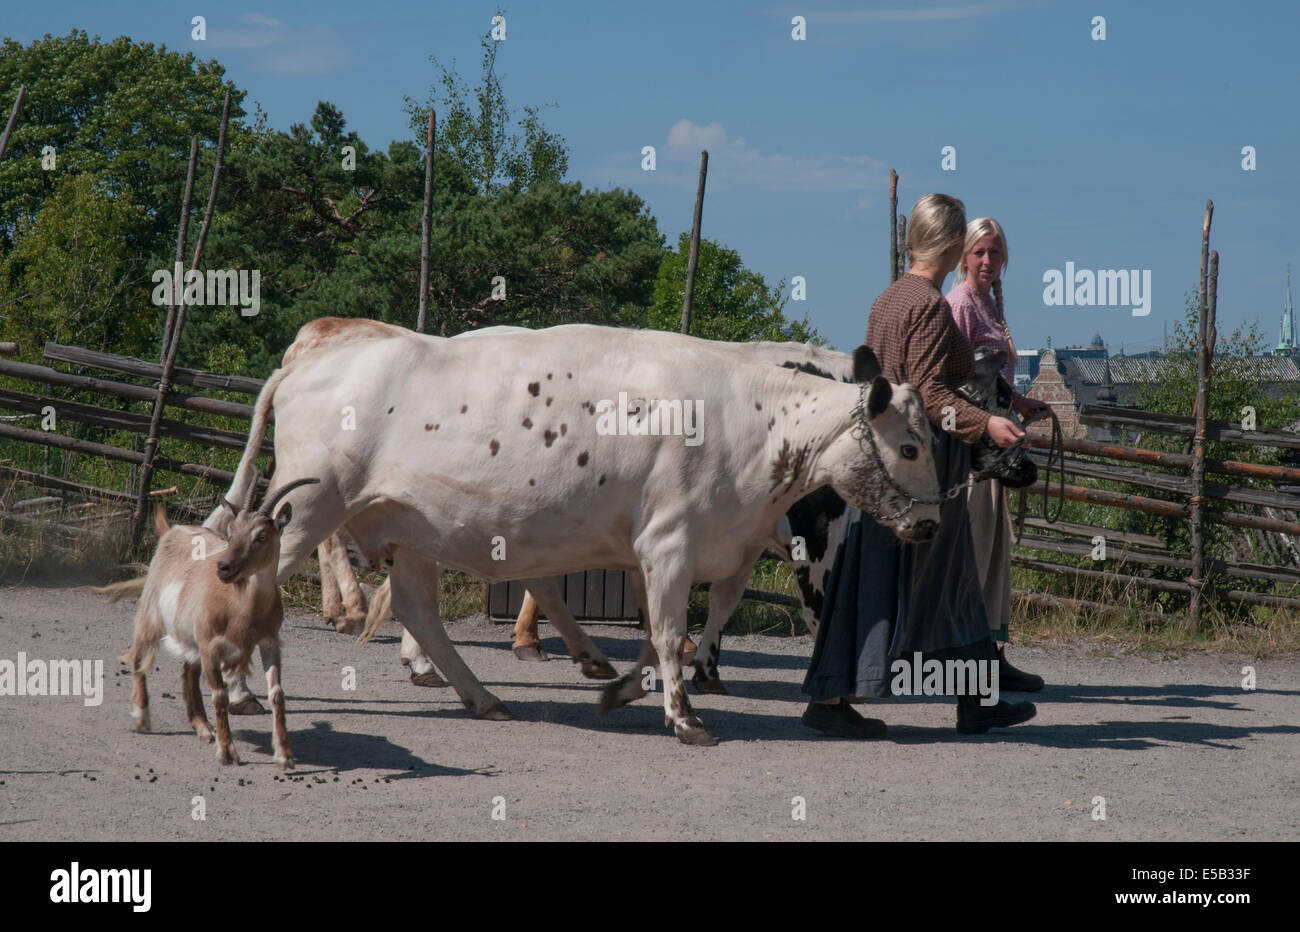 Tending the livestock at a summer pasture farm (Dalarna, N. Sweden) at Skansen open air museum, Djurgarden, Stockholm - Stock Image